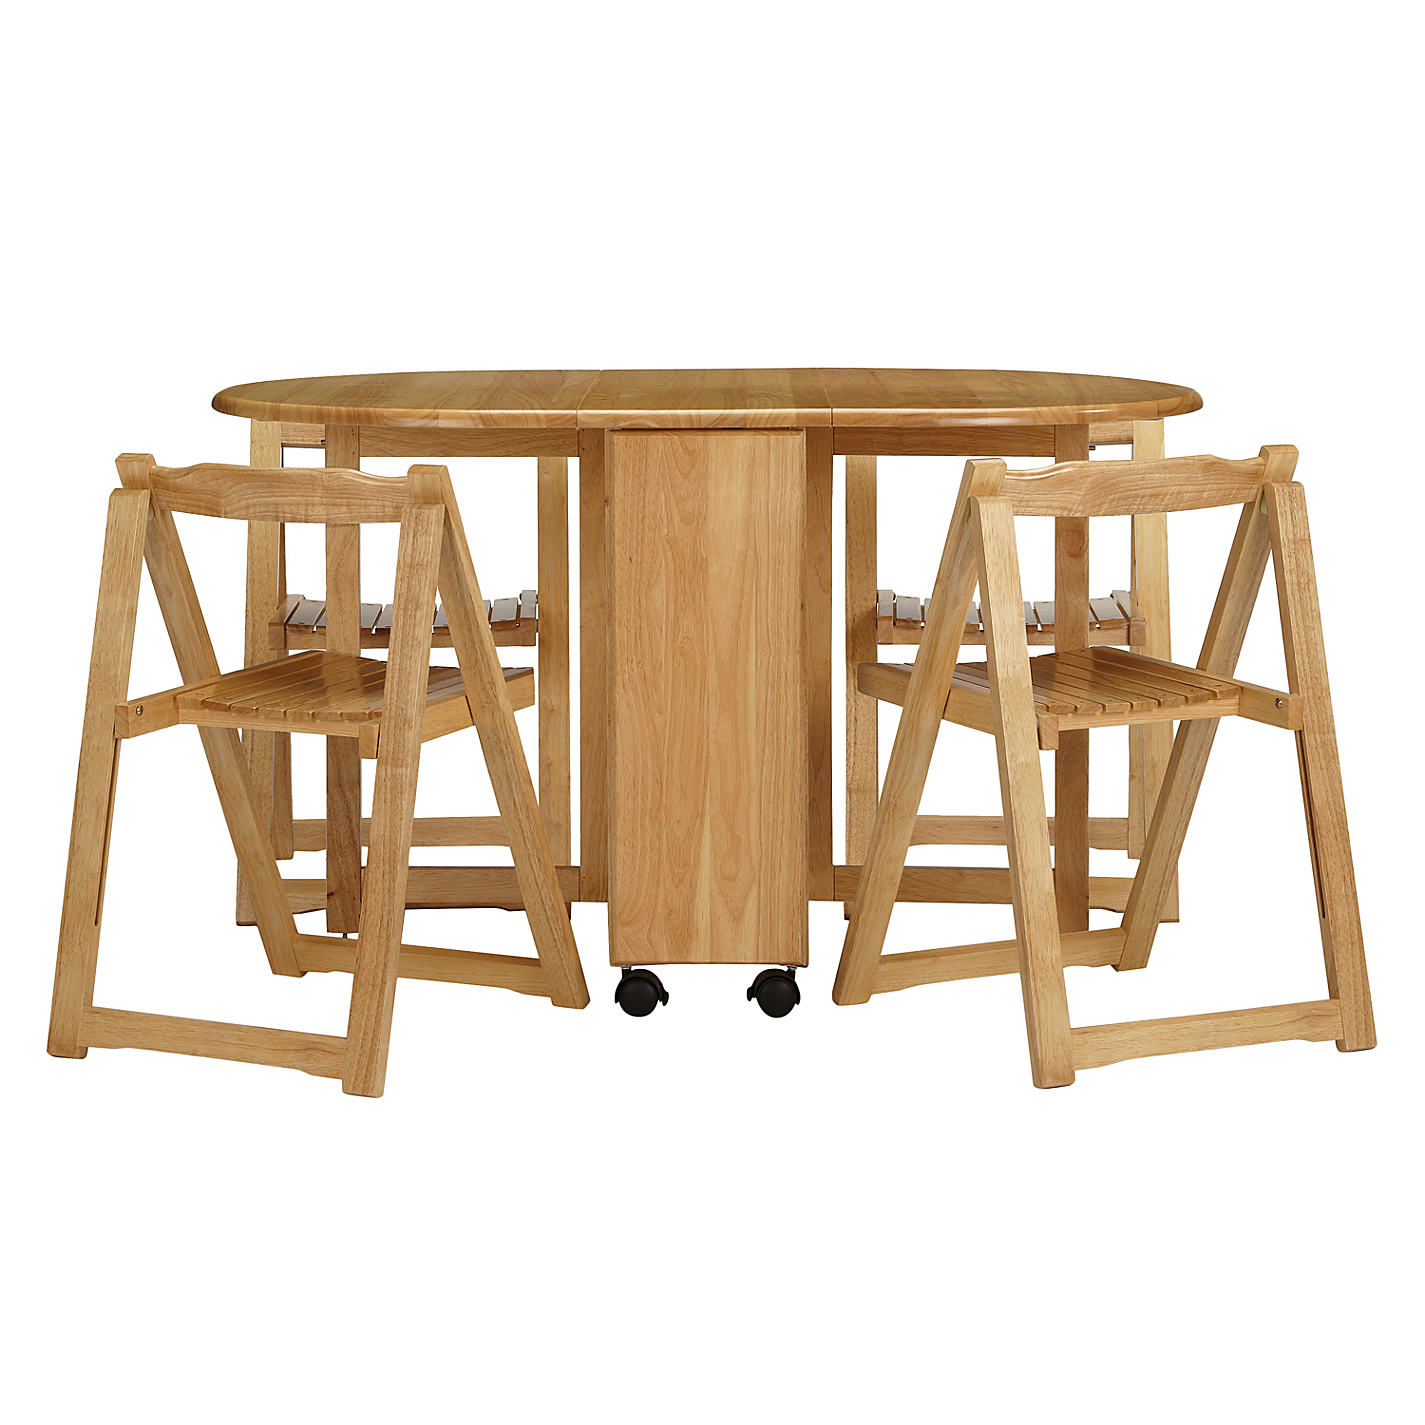 Butterfly Dining Table And Chairs India butterfly drop  : 233404855alt1prodexlrg from hotrodhal.com size 1425 x 1425 jpeg 172kB